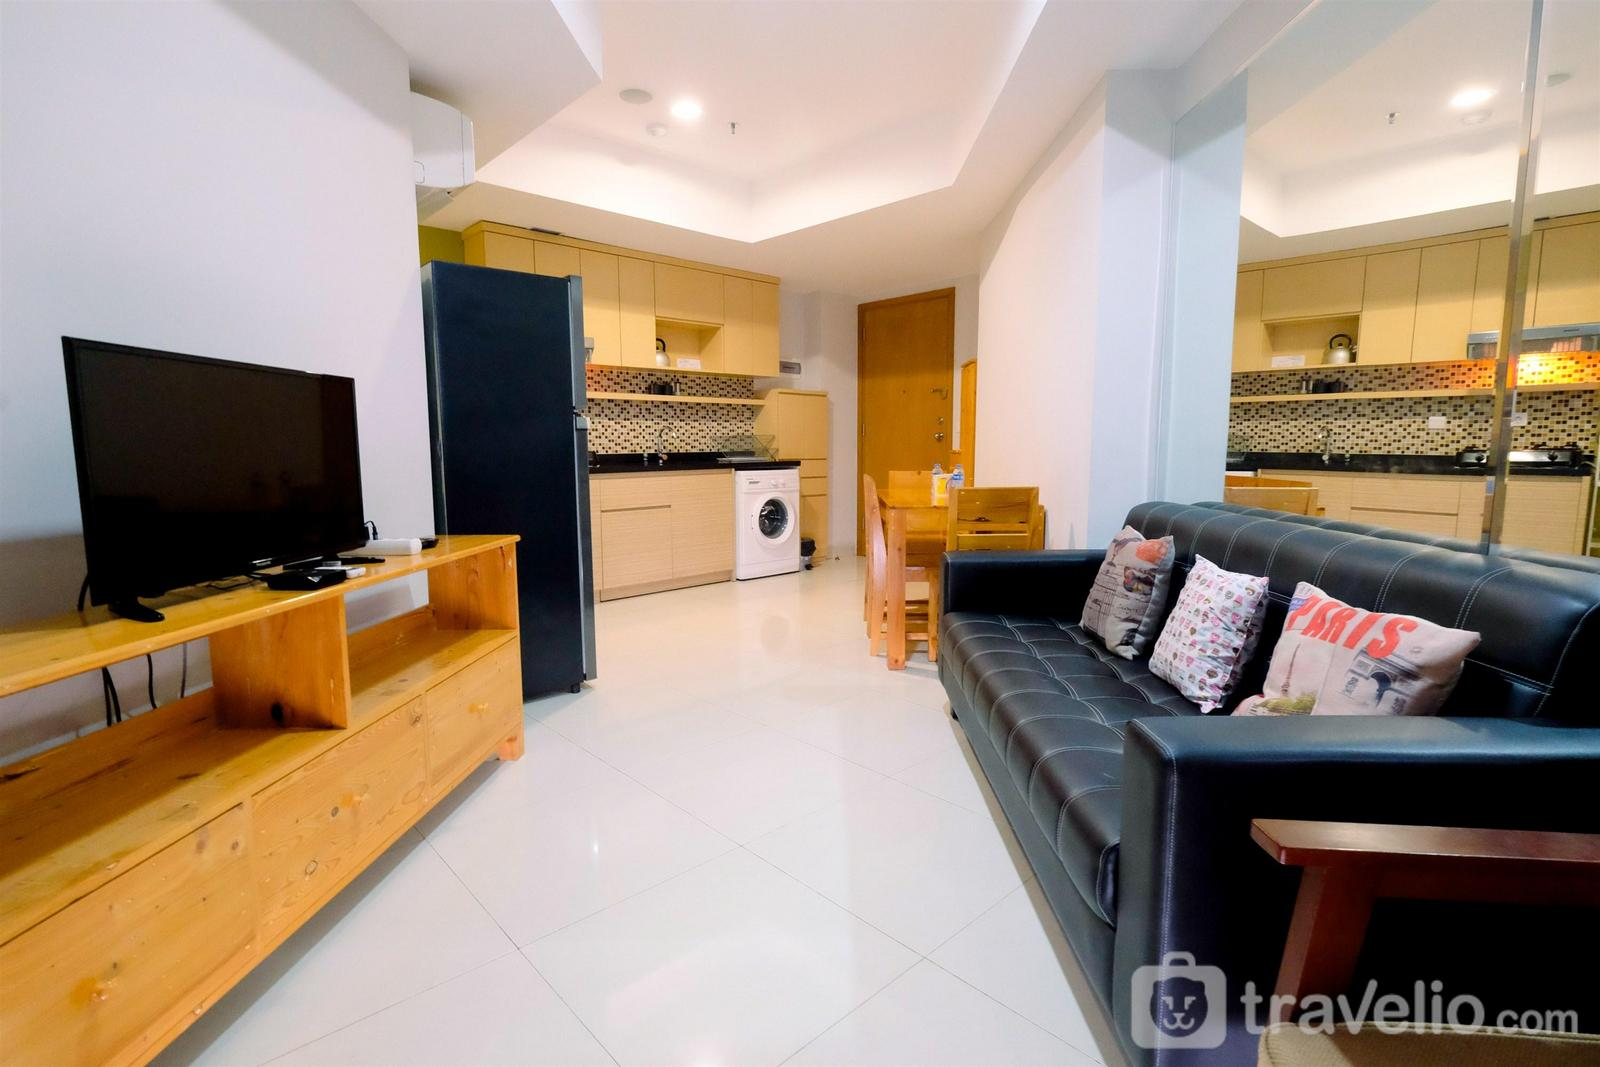 The Mansion Kemayoran - 2BR at The Mansion Kemayoran Apartment near JIEXPO By Travelio